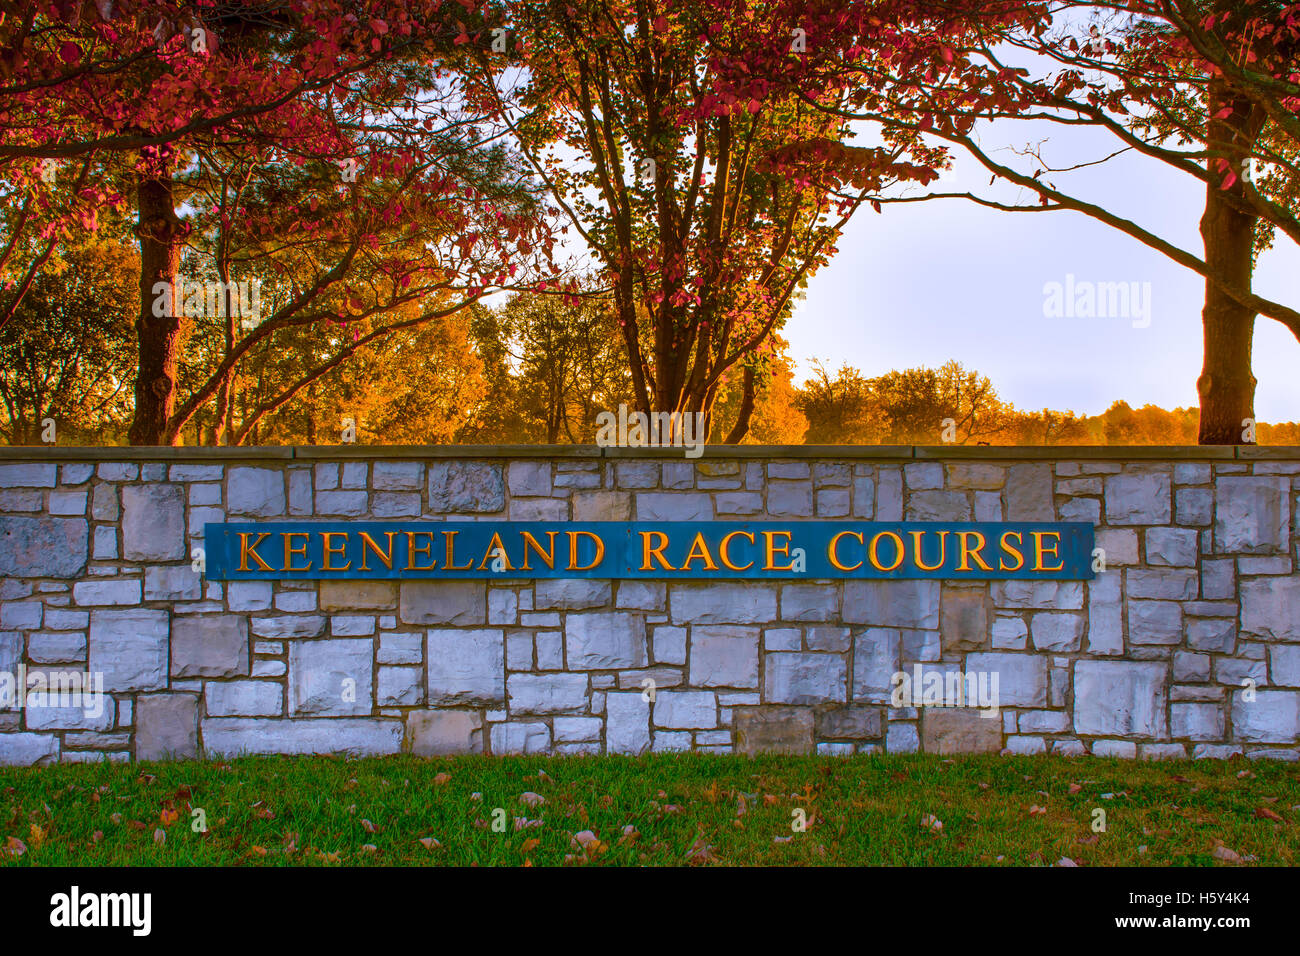 Lexington, Kentucky, USA - Oct. 17, 2016: Keeneland is a premier thoroughbred horse racing and sales facility in - Stock Image